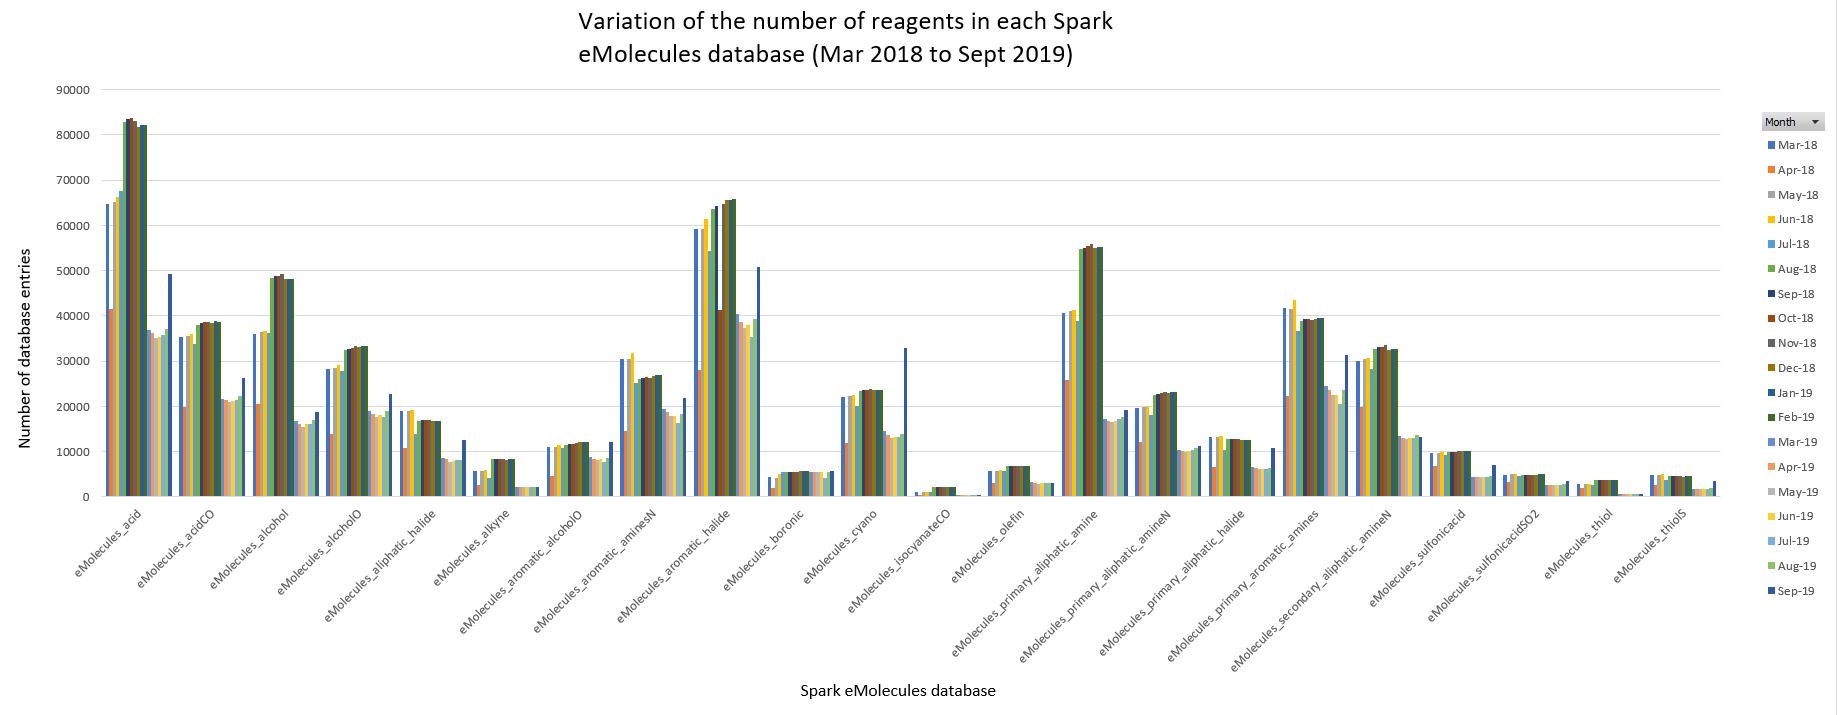 Monthly variation of the number of reagents contained in each Spark eMolecules database